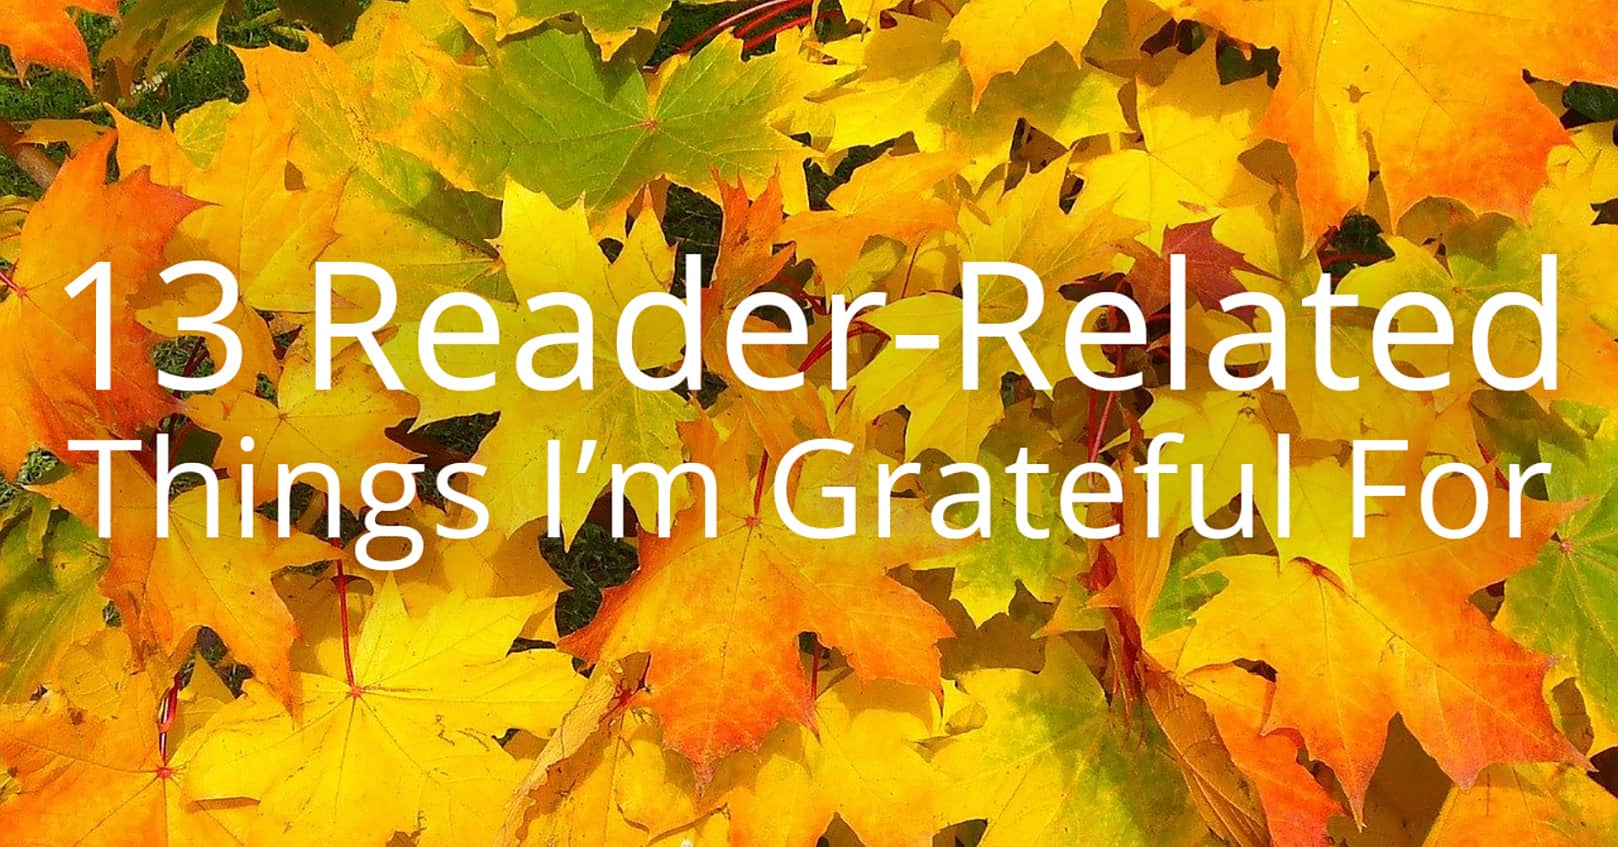 reader-related things Im grateful for